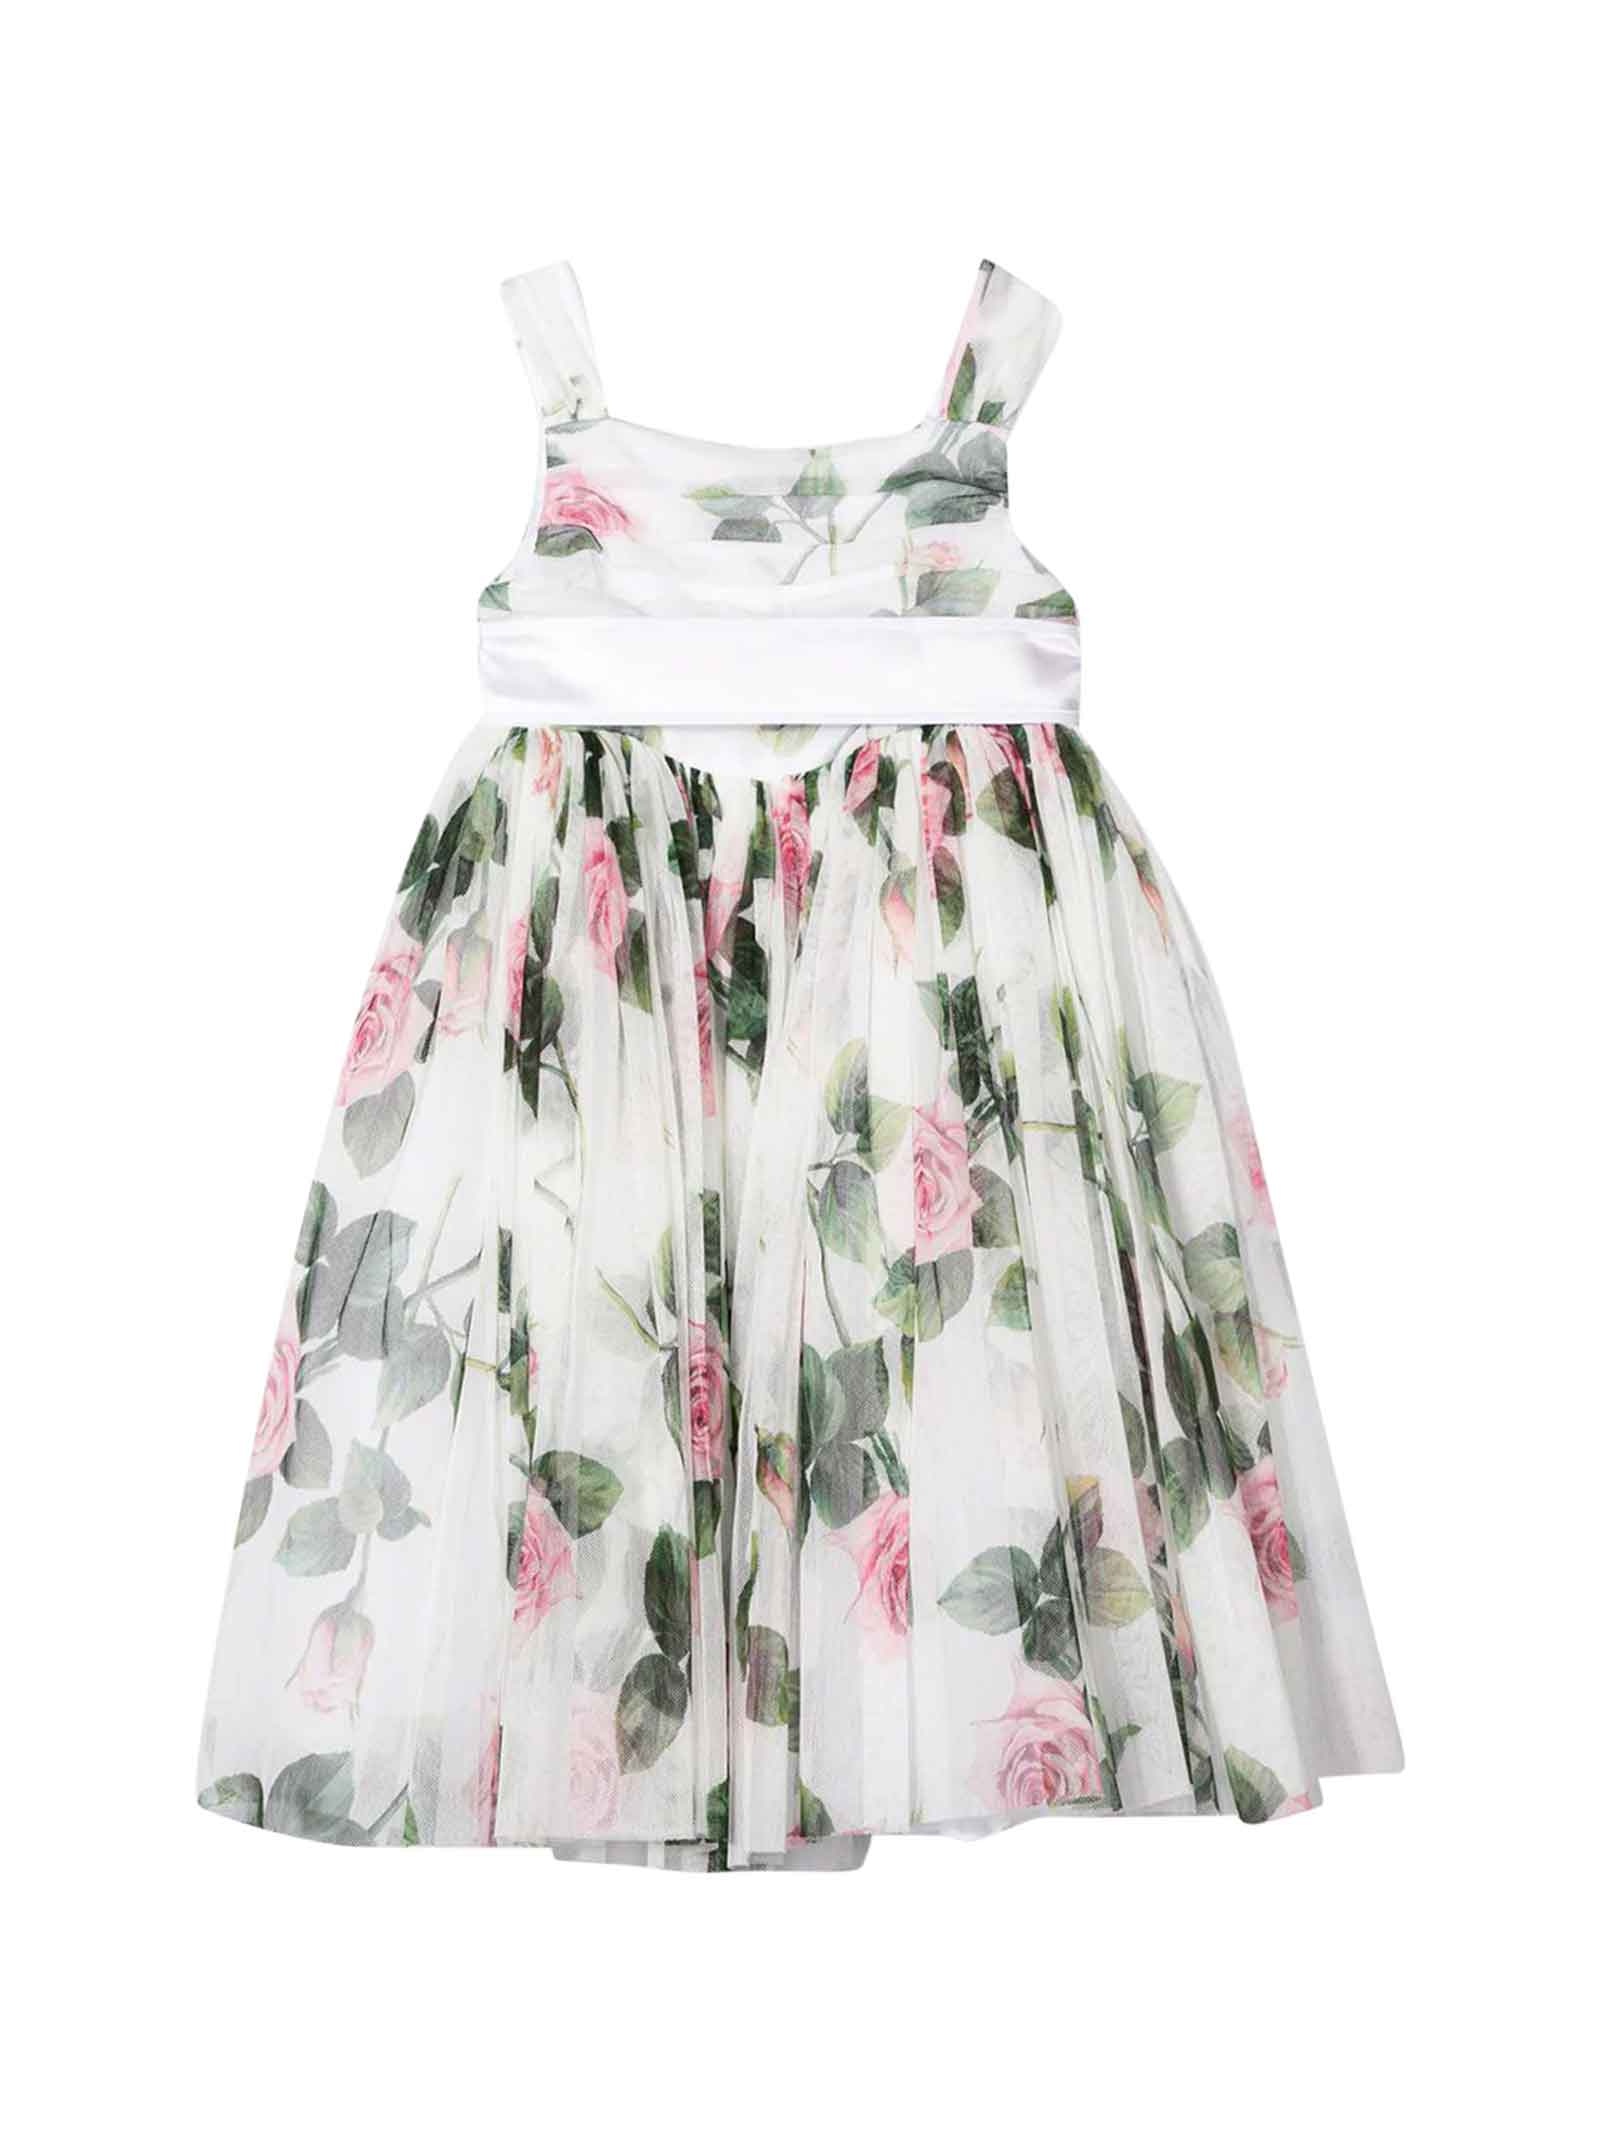 Buy Dolce & Gabbana White Dress With Floral Print online, shop Dolce & Gabbana with free shipping